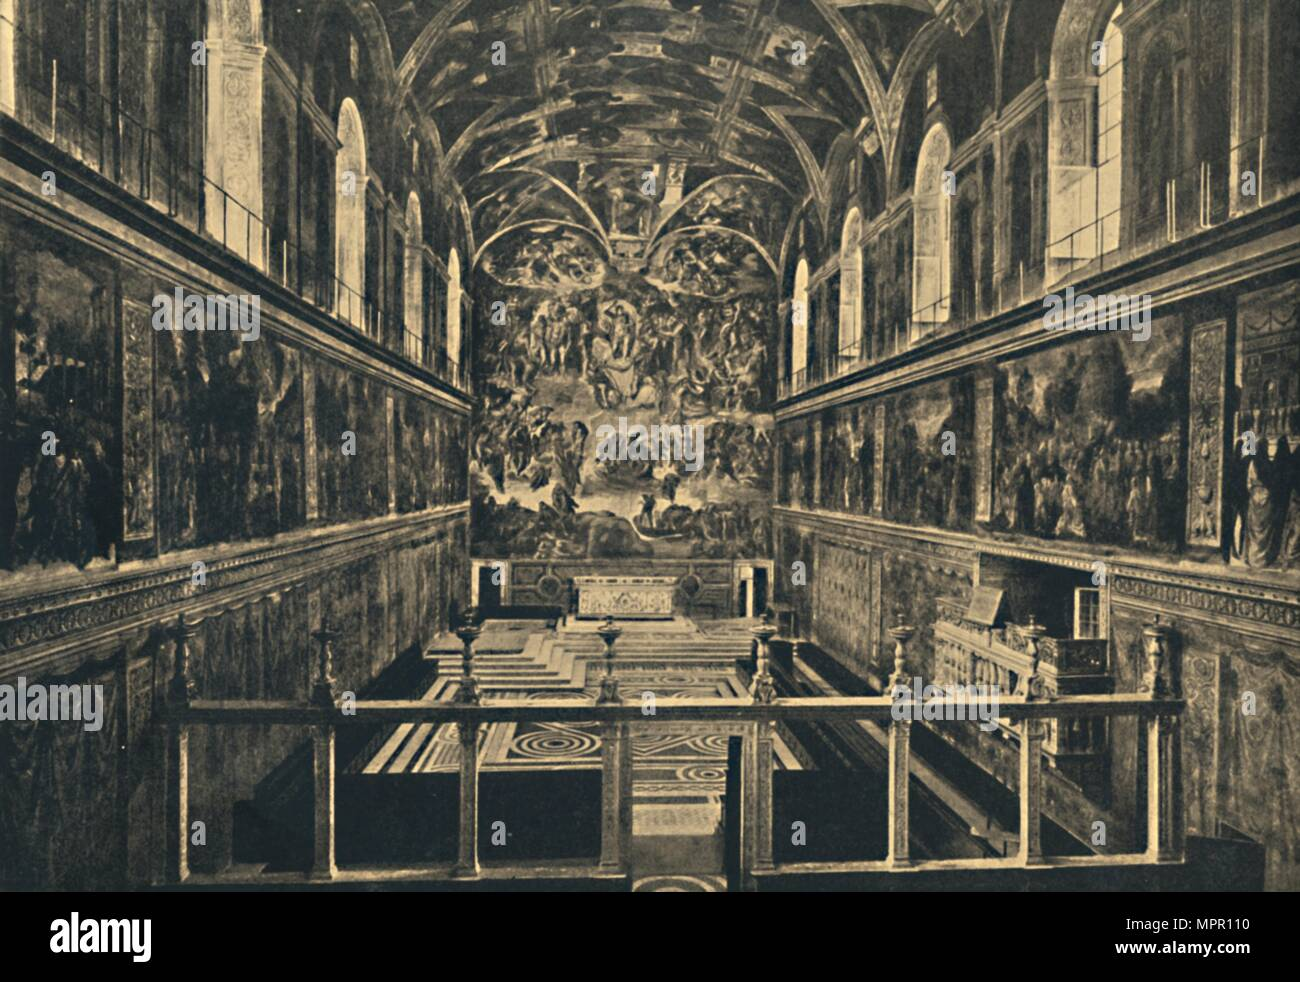 'Roma - Vatican Palace - The Sistine Chapel, fonded by Sixtus IV in 1483', 1910. Artist: Unknown. - Stock Image